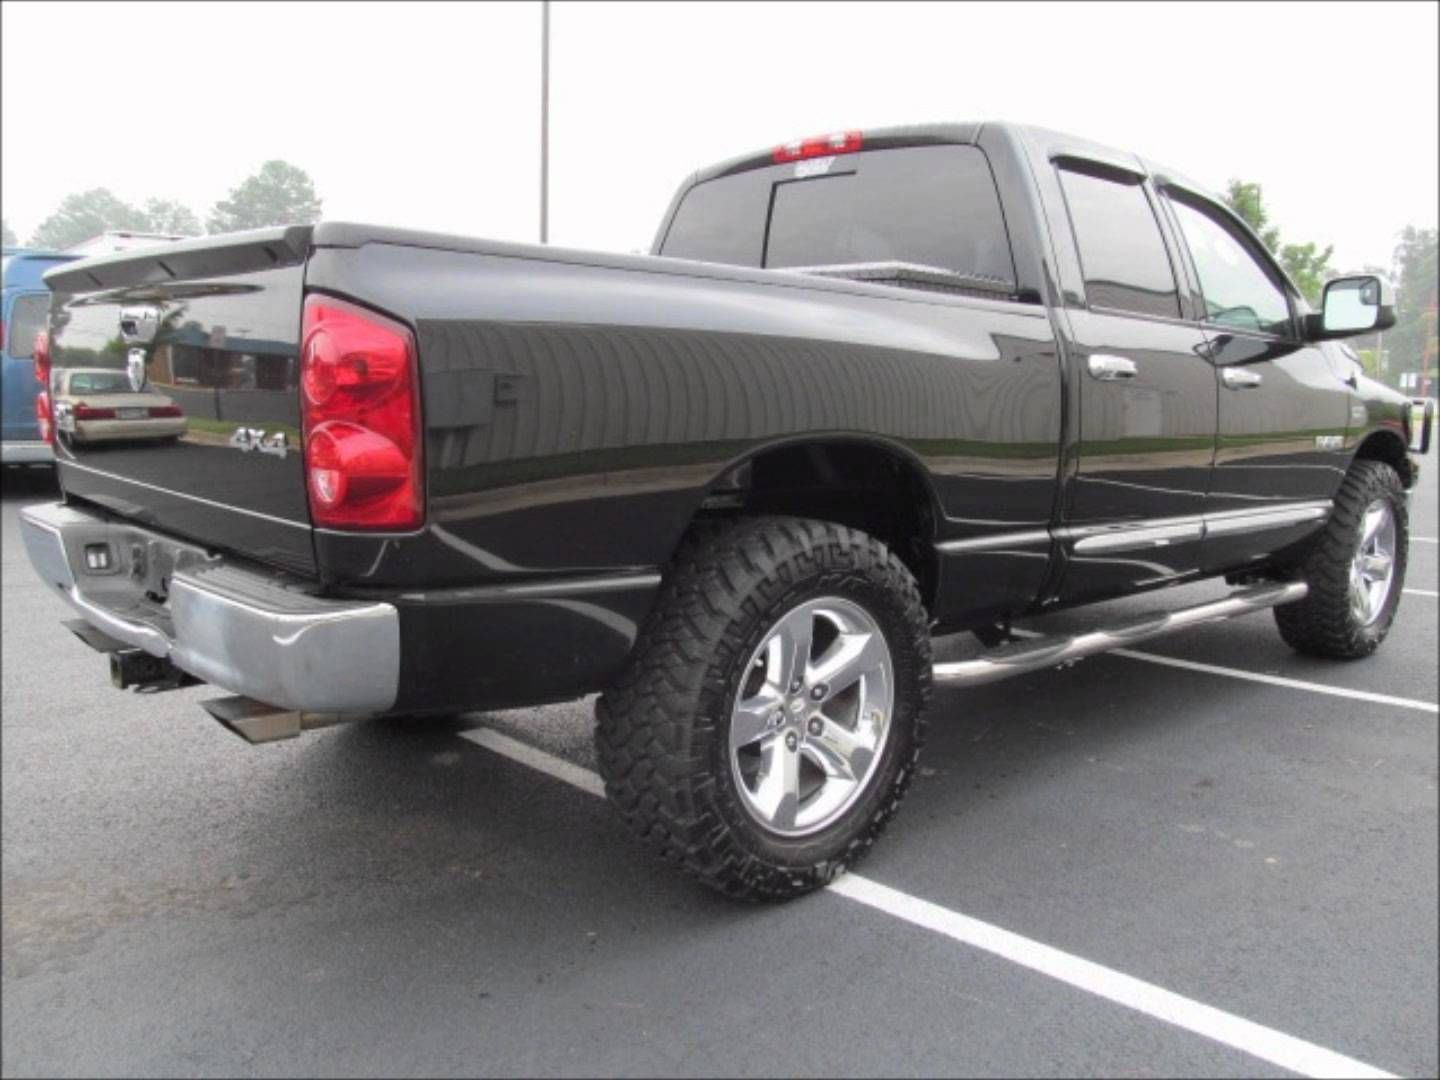 2008 Dodge Ram 1500 Lifted Truck For Sale http//www